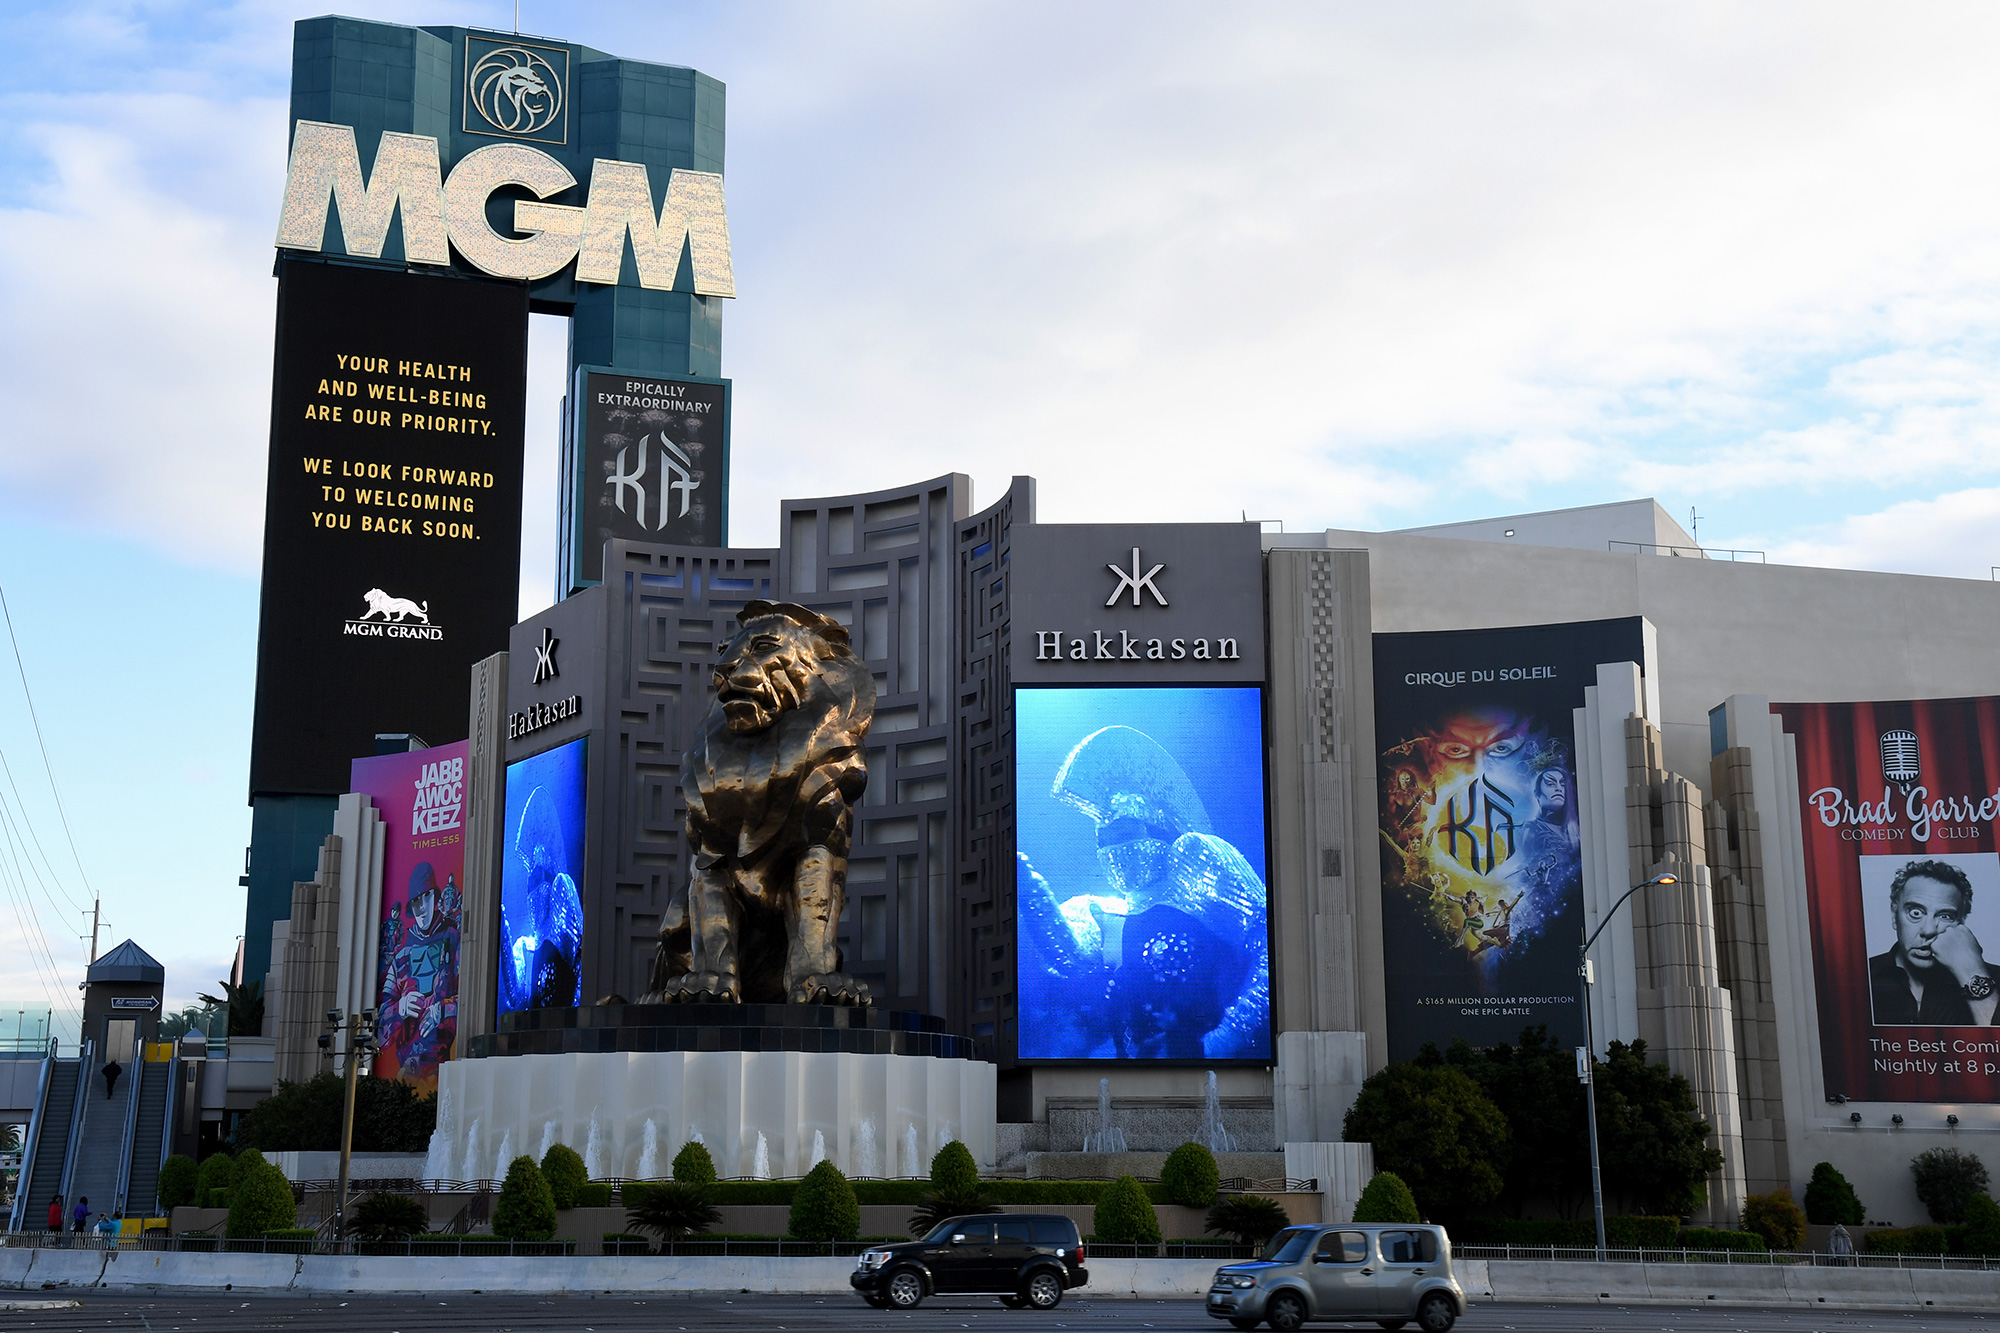 Las Vegas Casinos To Close Their Doors In Response To Coronavirus Pandemic